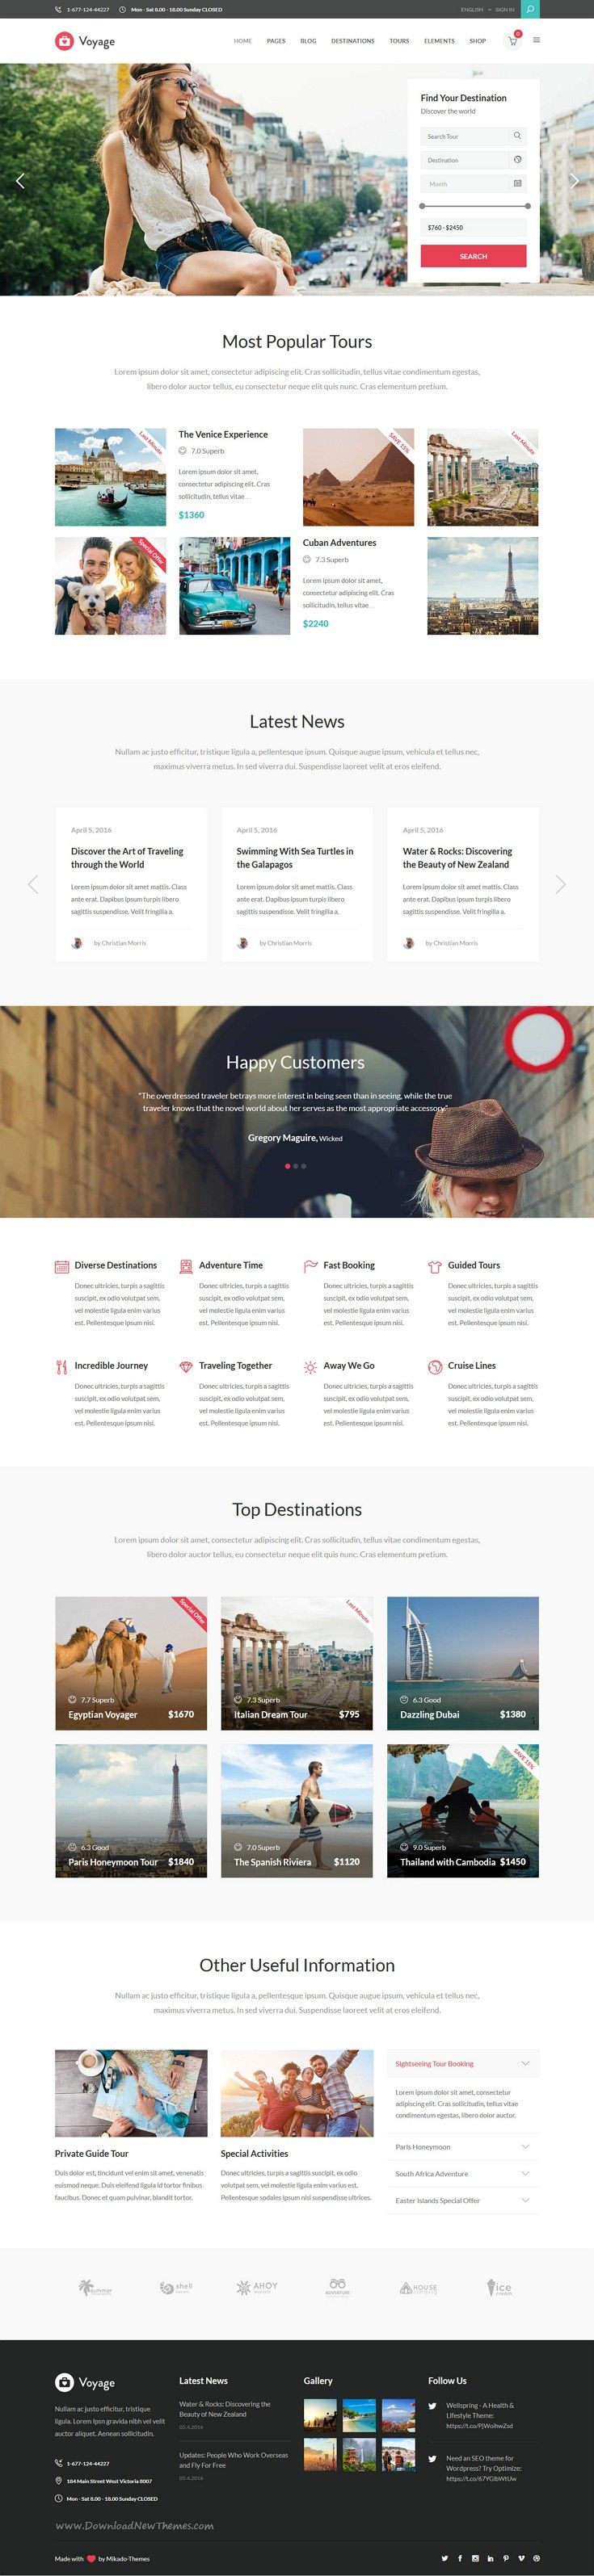 Voyage is modern and beautiful WordPress theme for all kinds of #travel and tourism businesses #website with integrated #booking functionality, PayPal connectivity. Download Now!